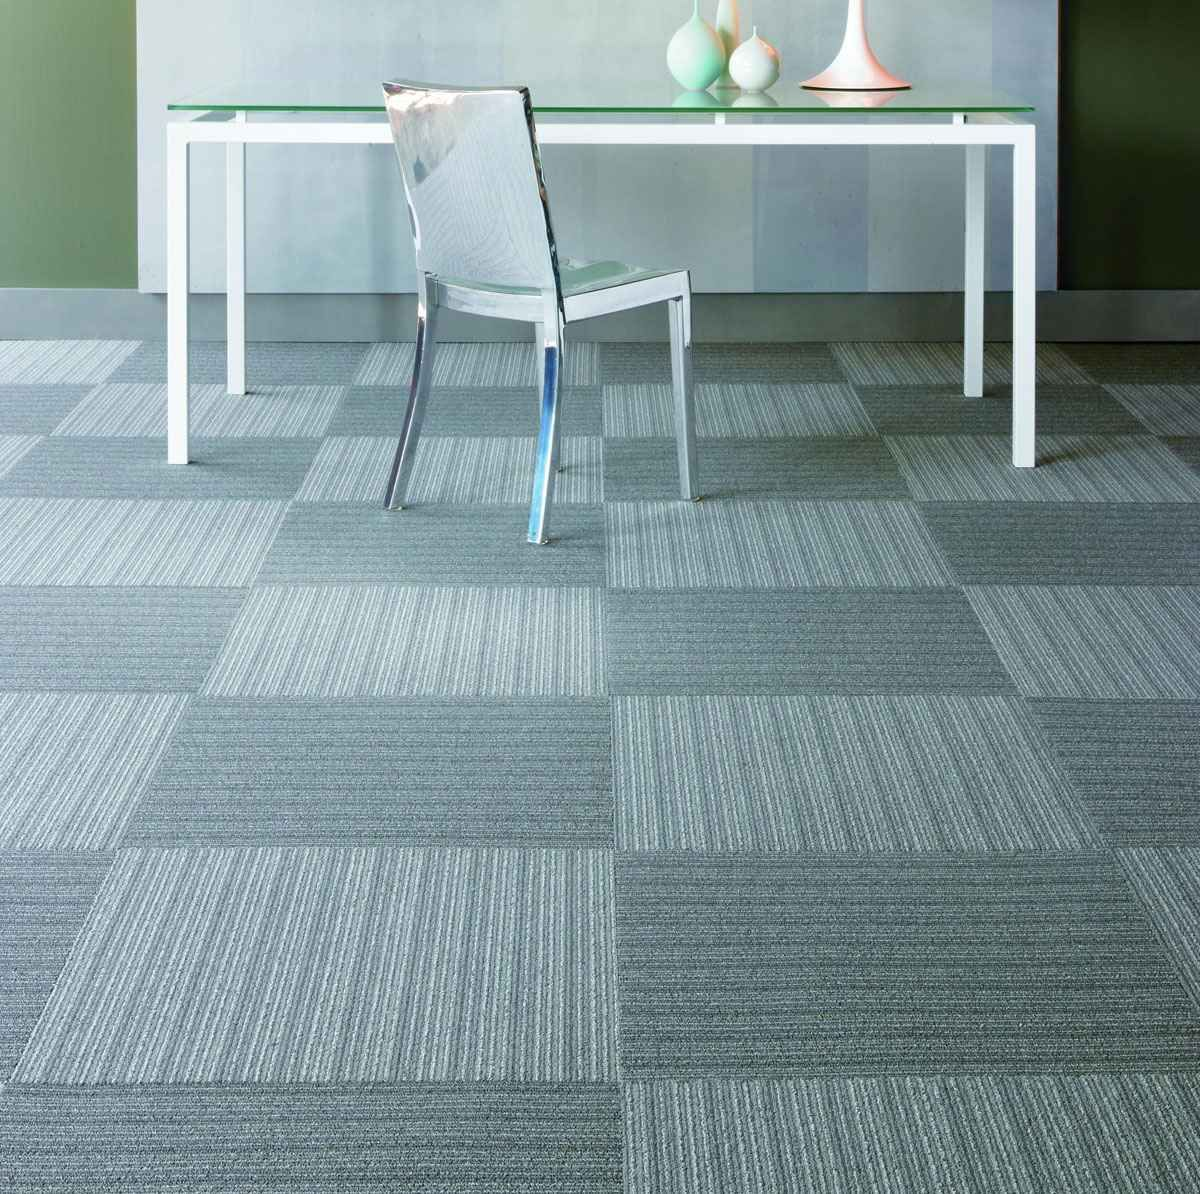 Peel And Stick Carpet Tiles Lowes   One Of The Easiest Ways Of Adding  Beauty And Colour To Your Home Is By Simply Bringing A